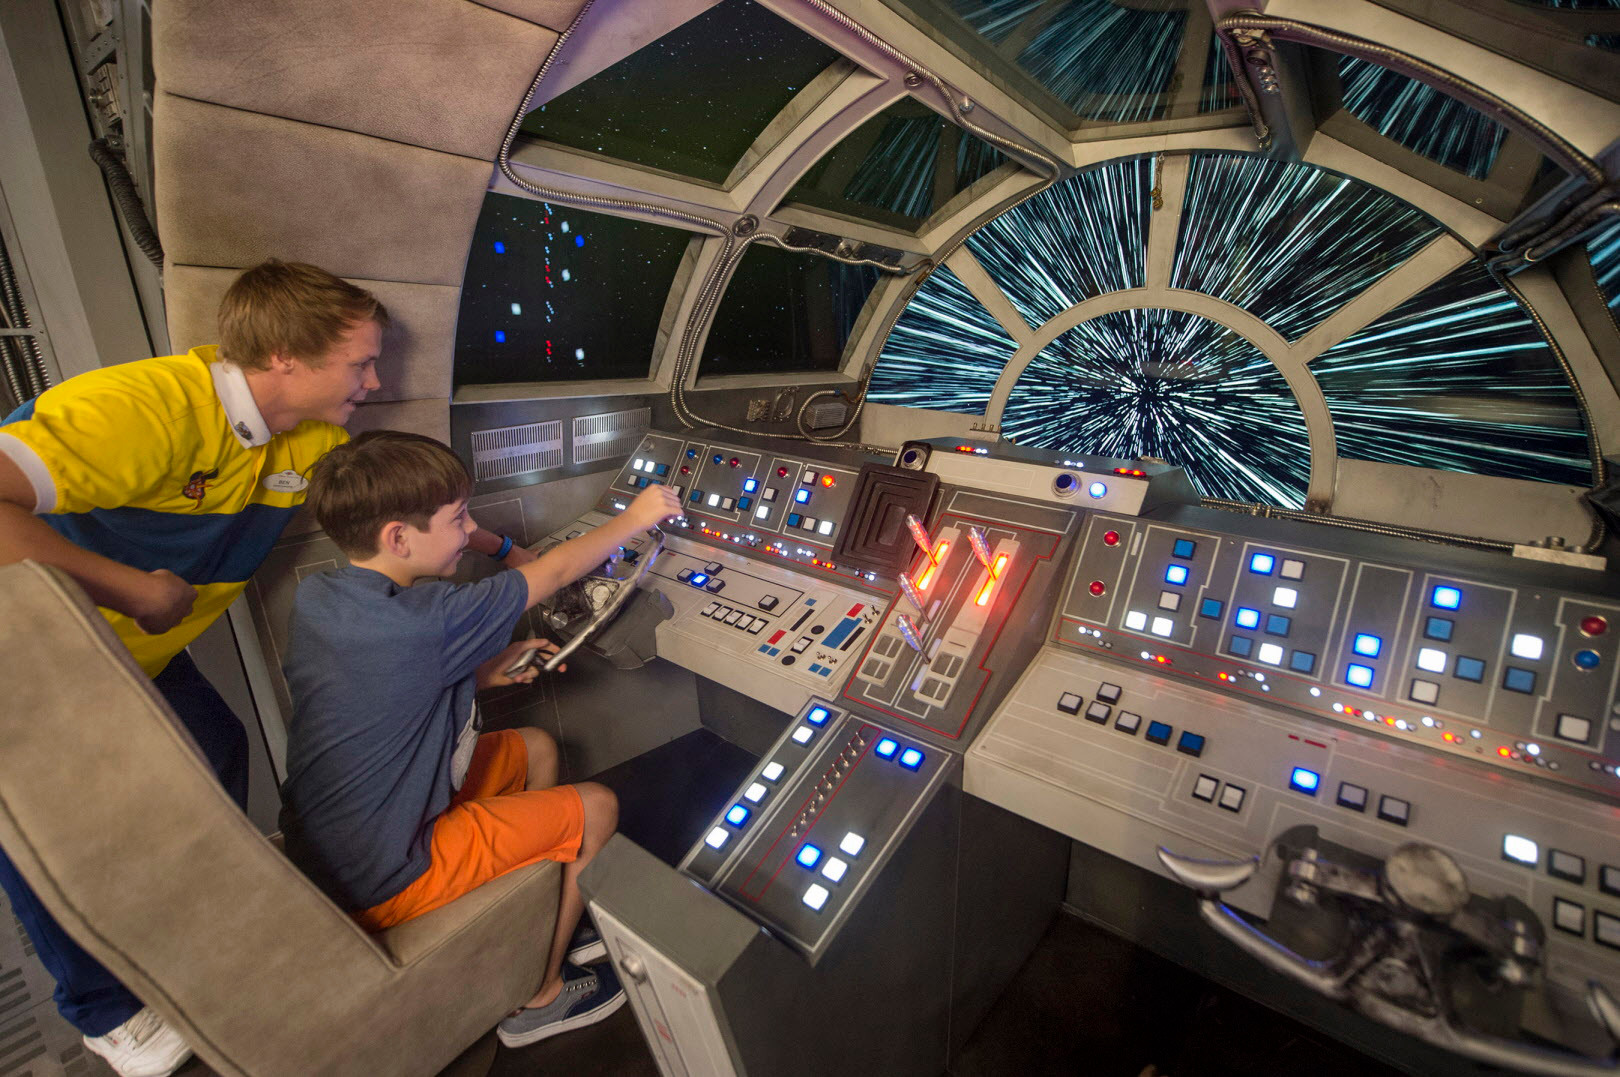 Disney Dream is the only place in the world where kids can pilot the Millennium Falcon.